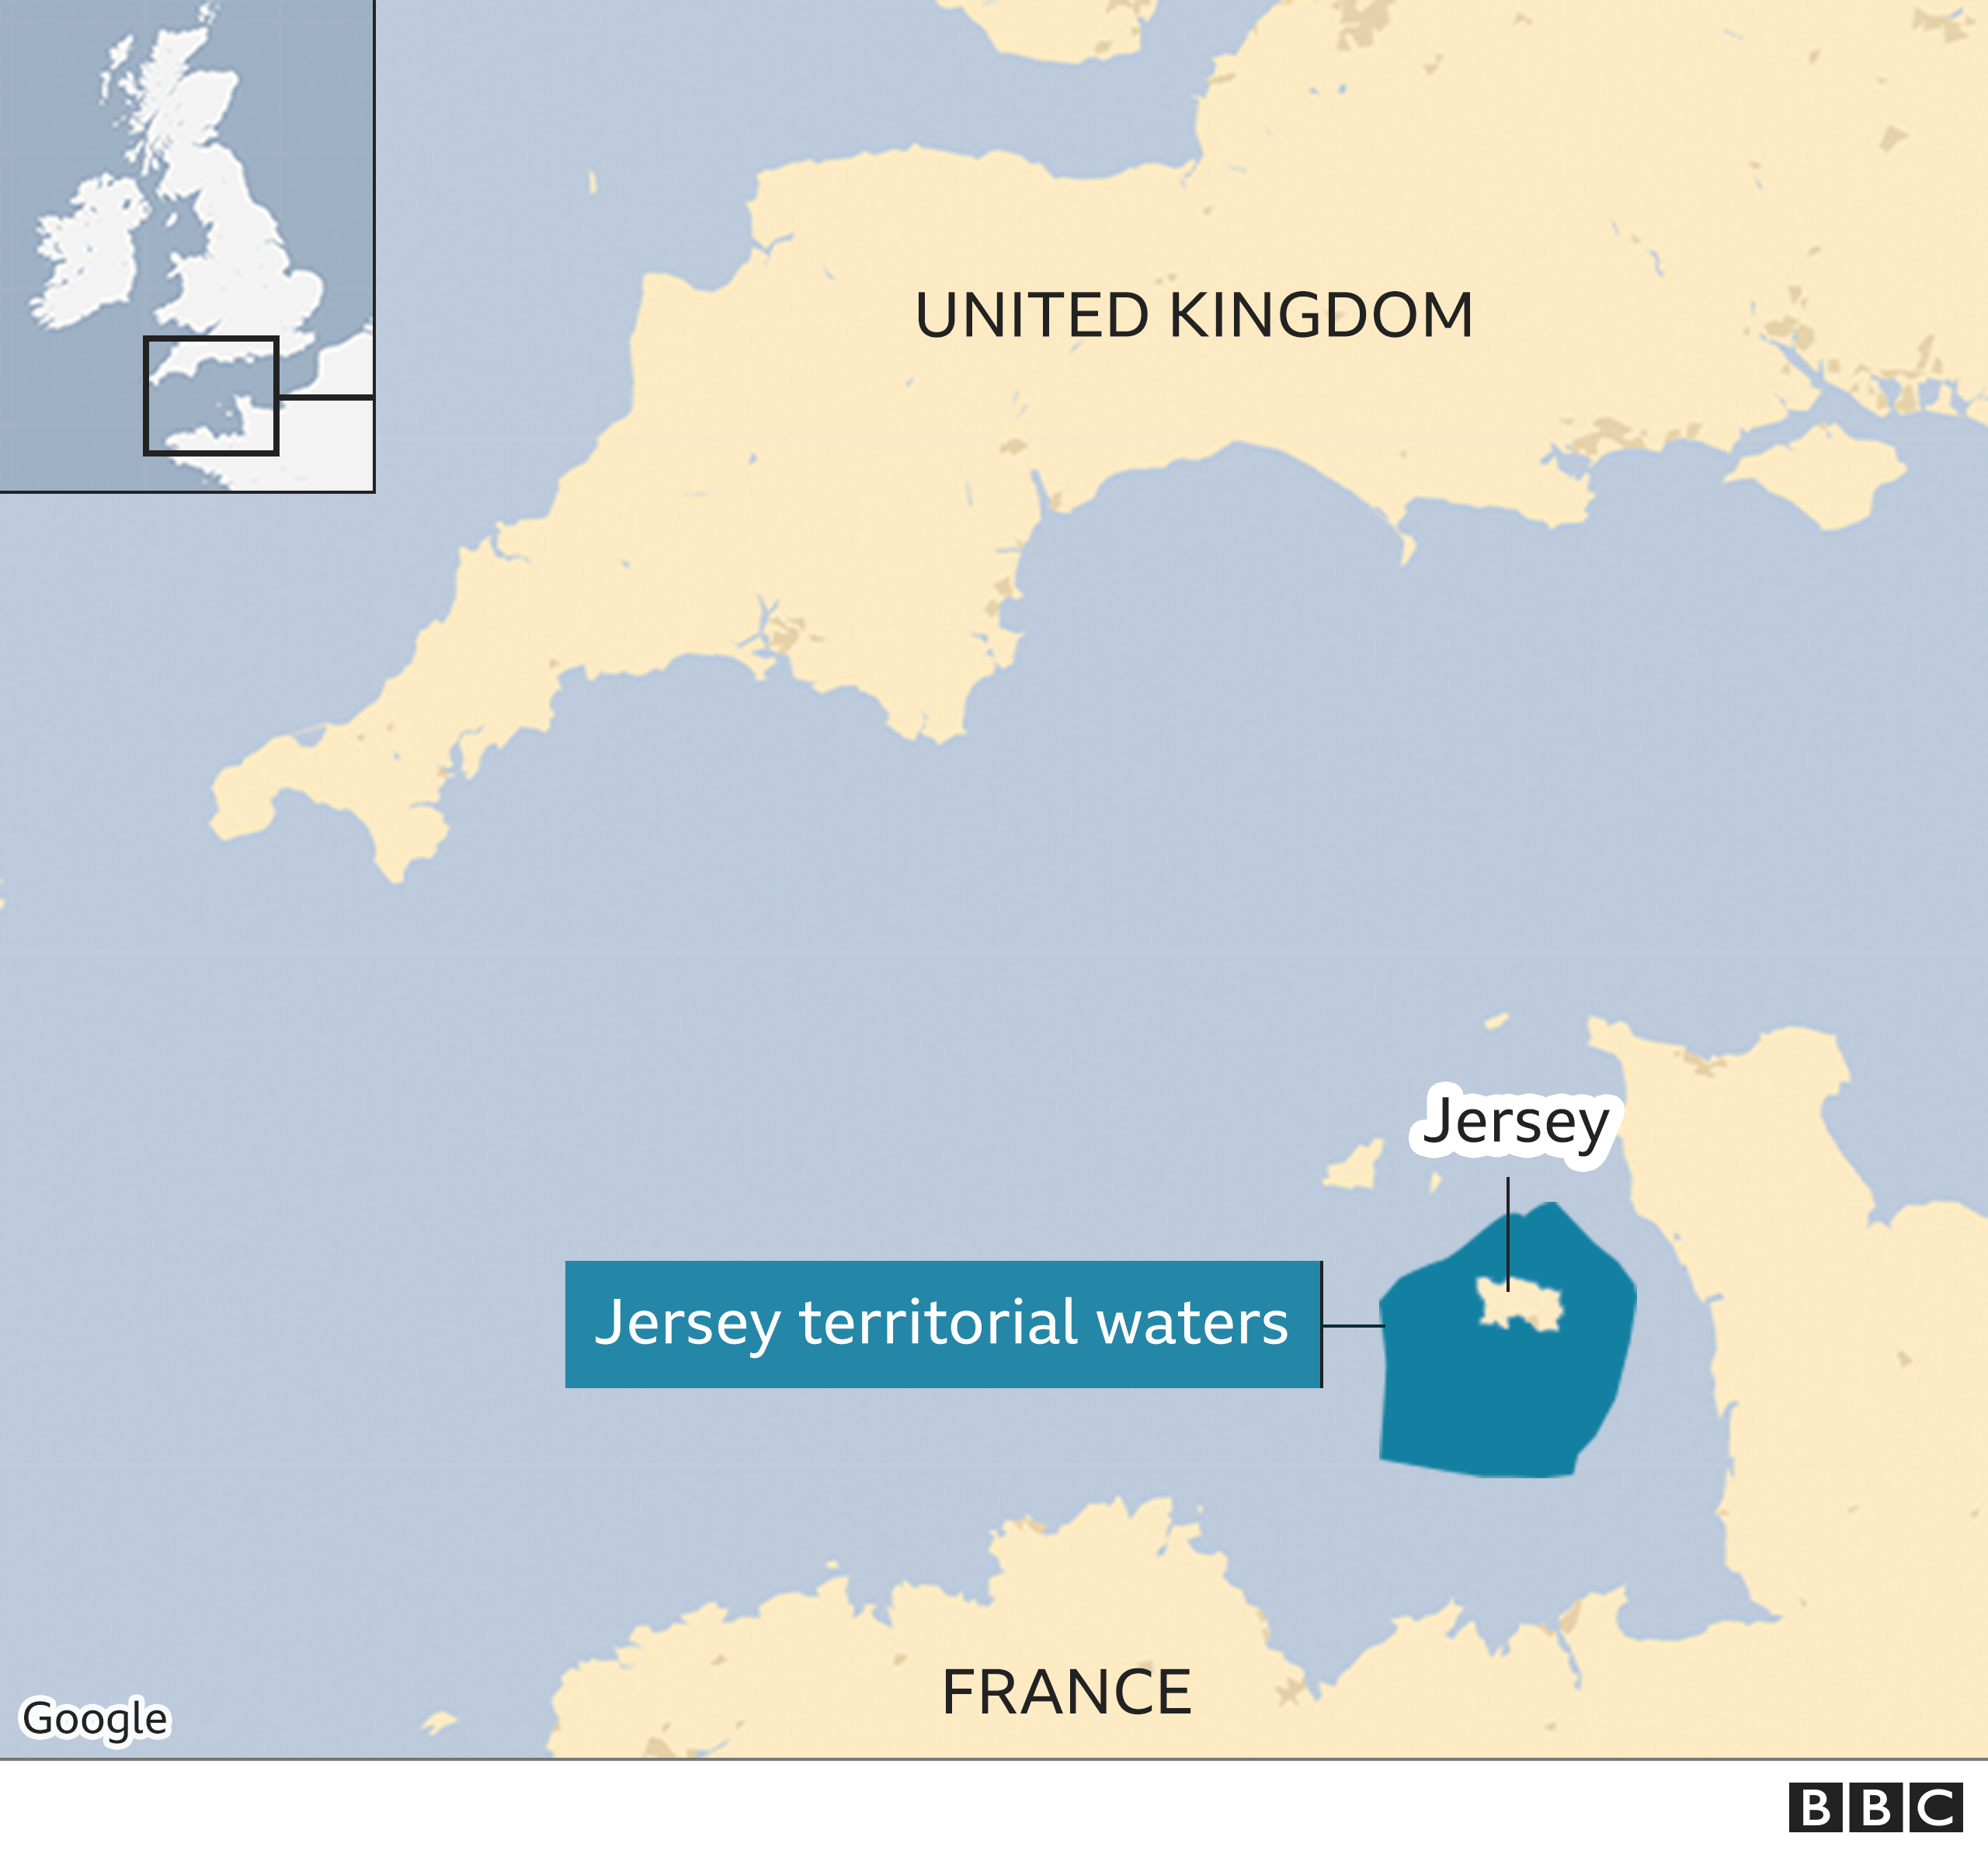 map of channel islands showing Jersey territorial waters